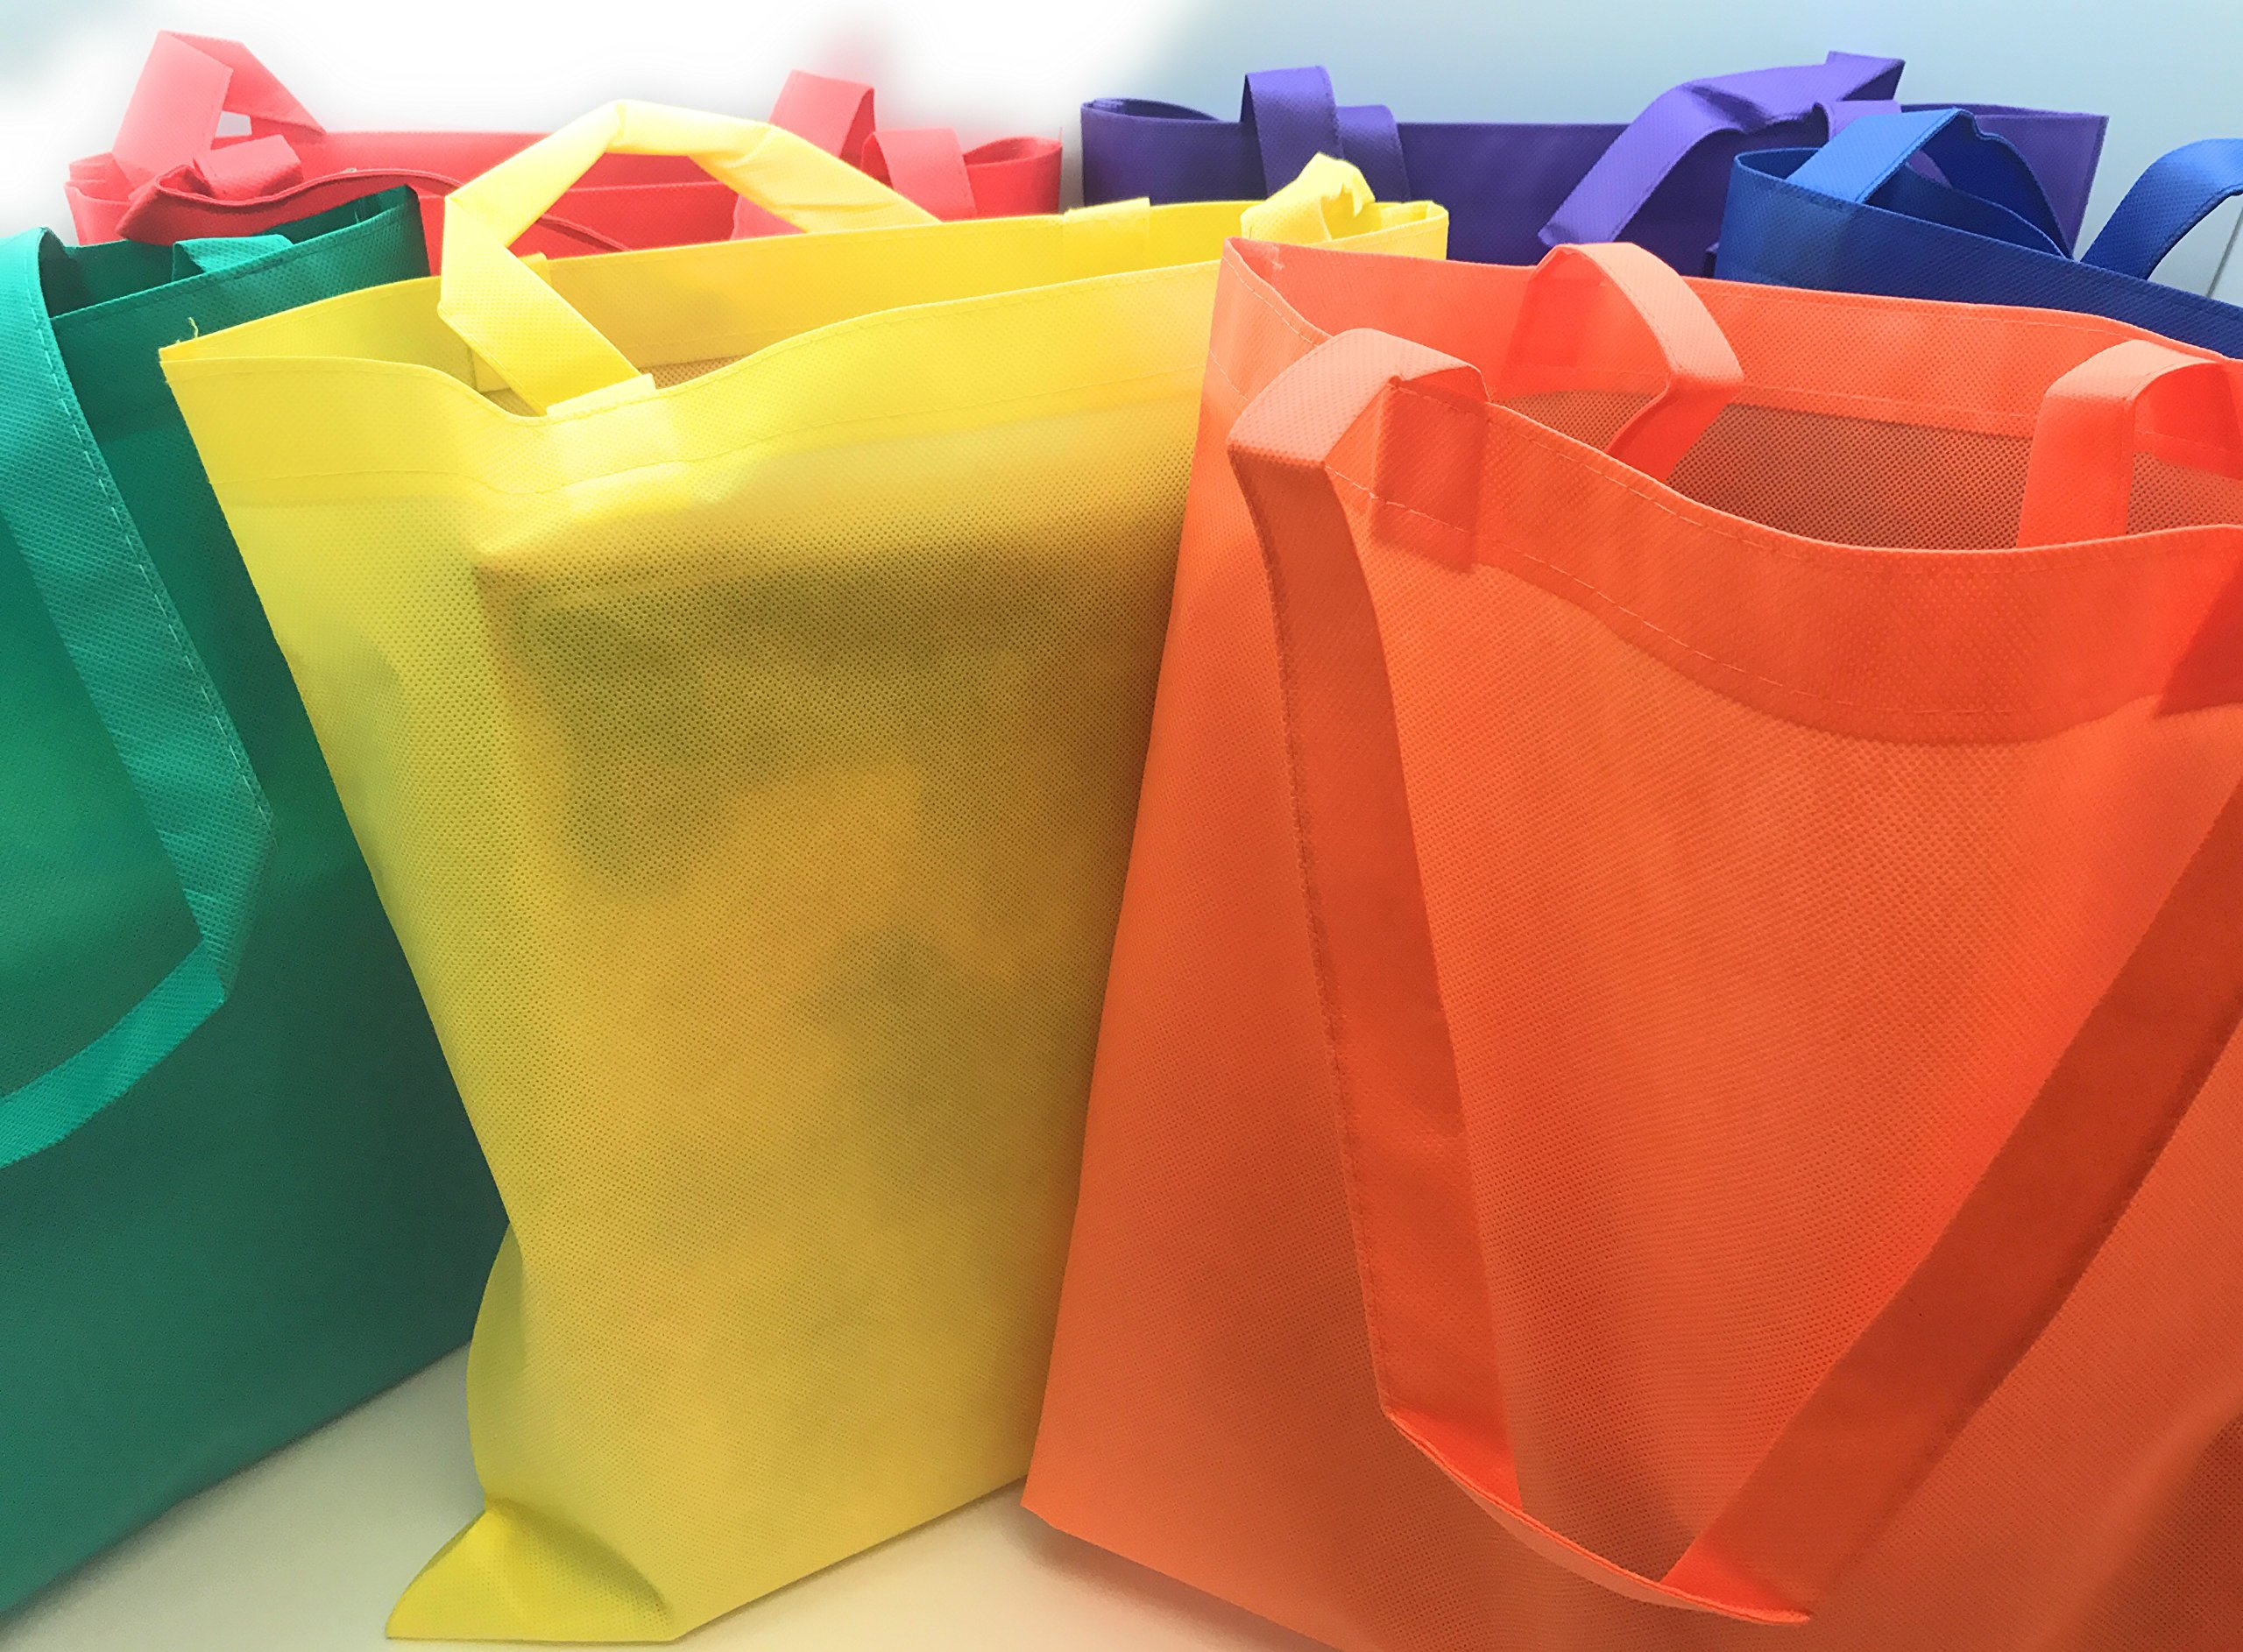 Oojami Nonwoven Polyester Tote Bag Assortment - 50 Pieces